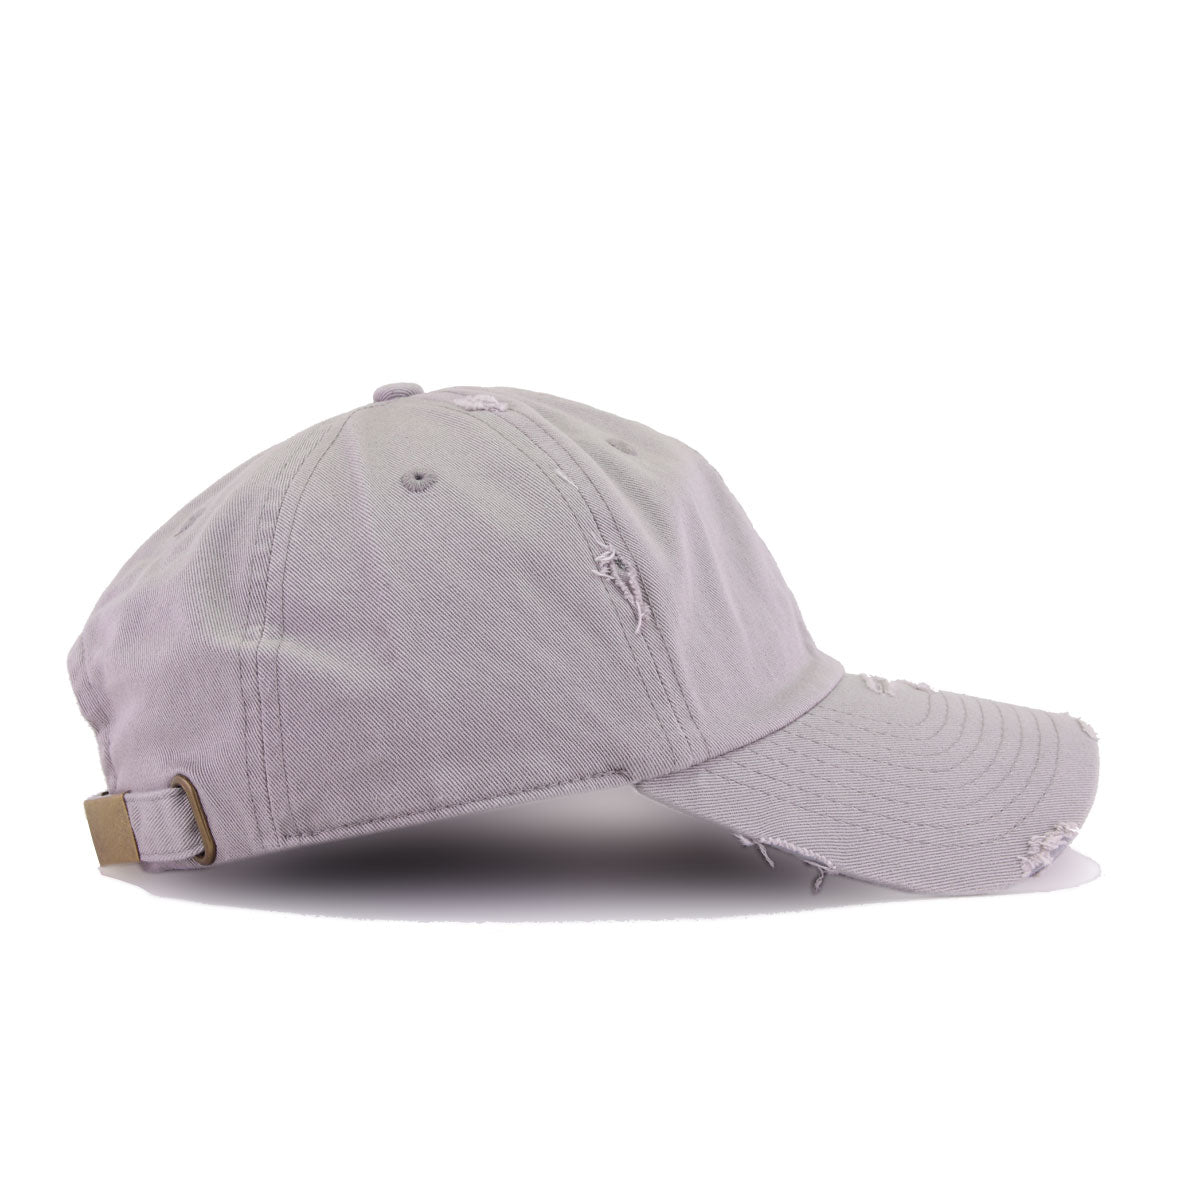 Distressed Light Grey KBEthos Vintage Dad Hat